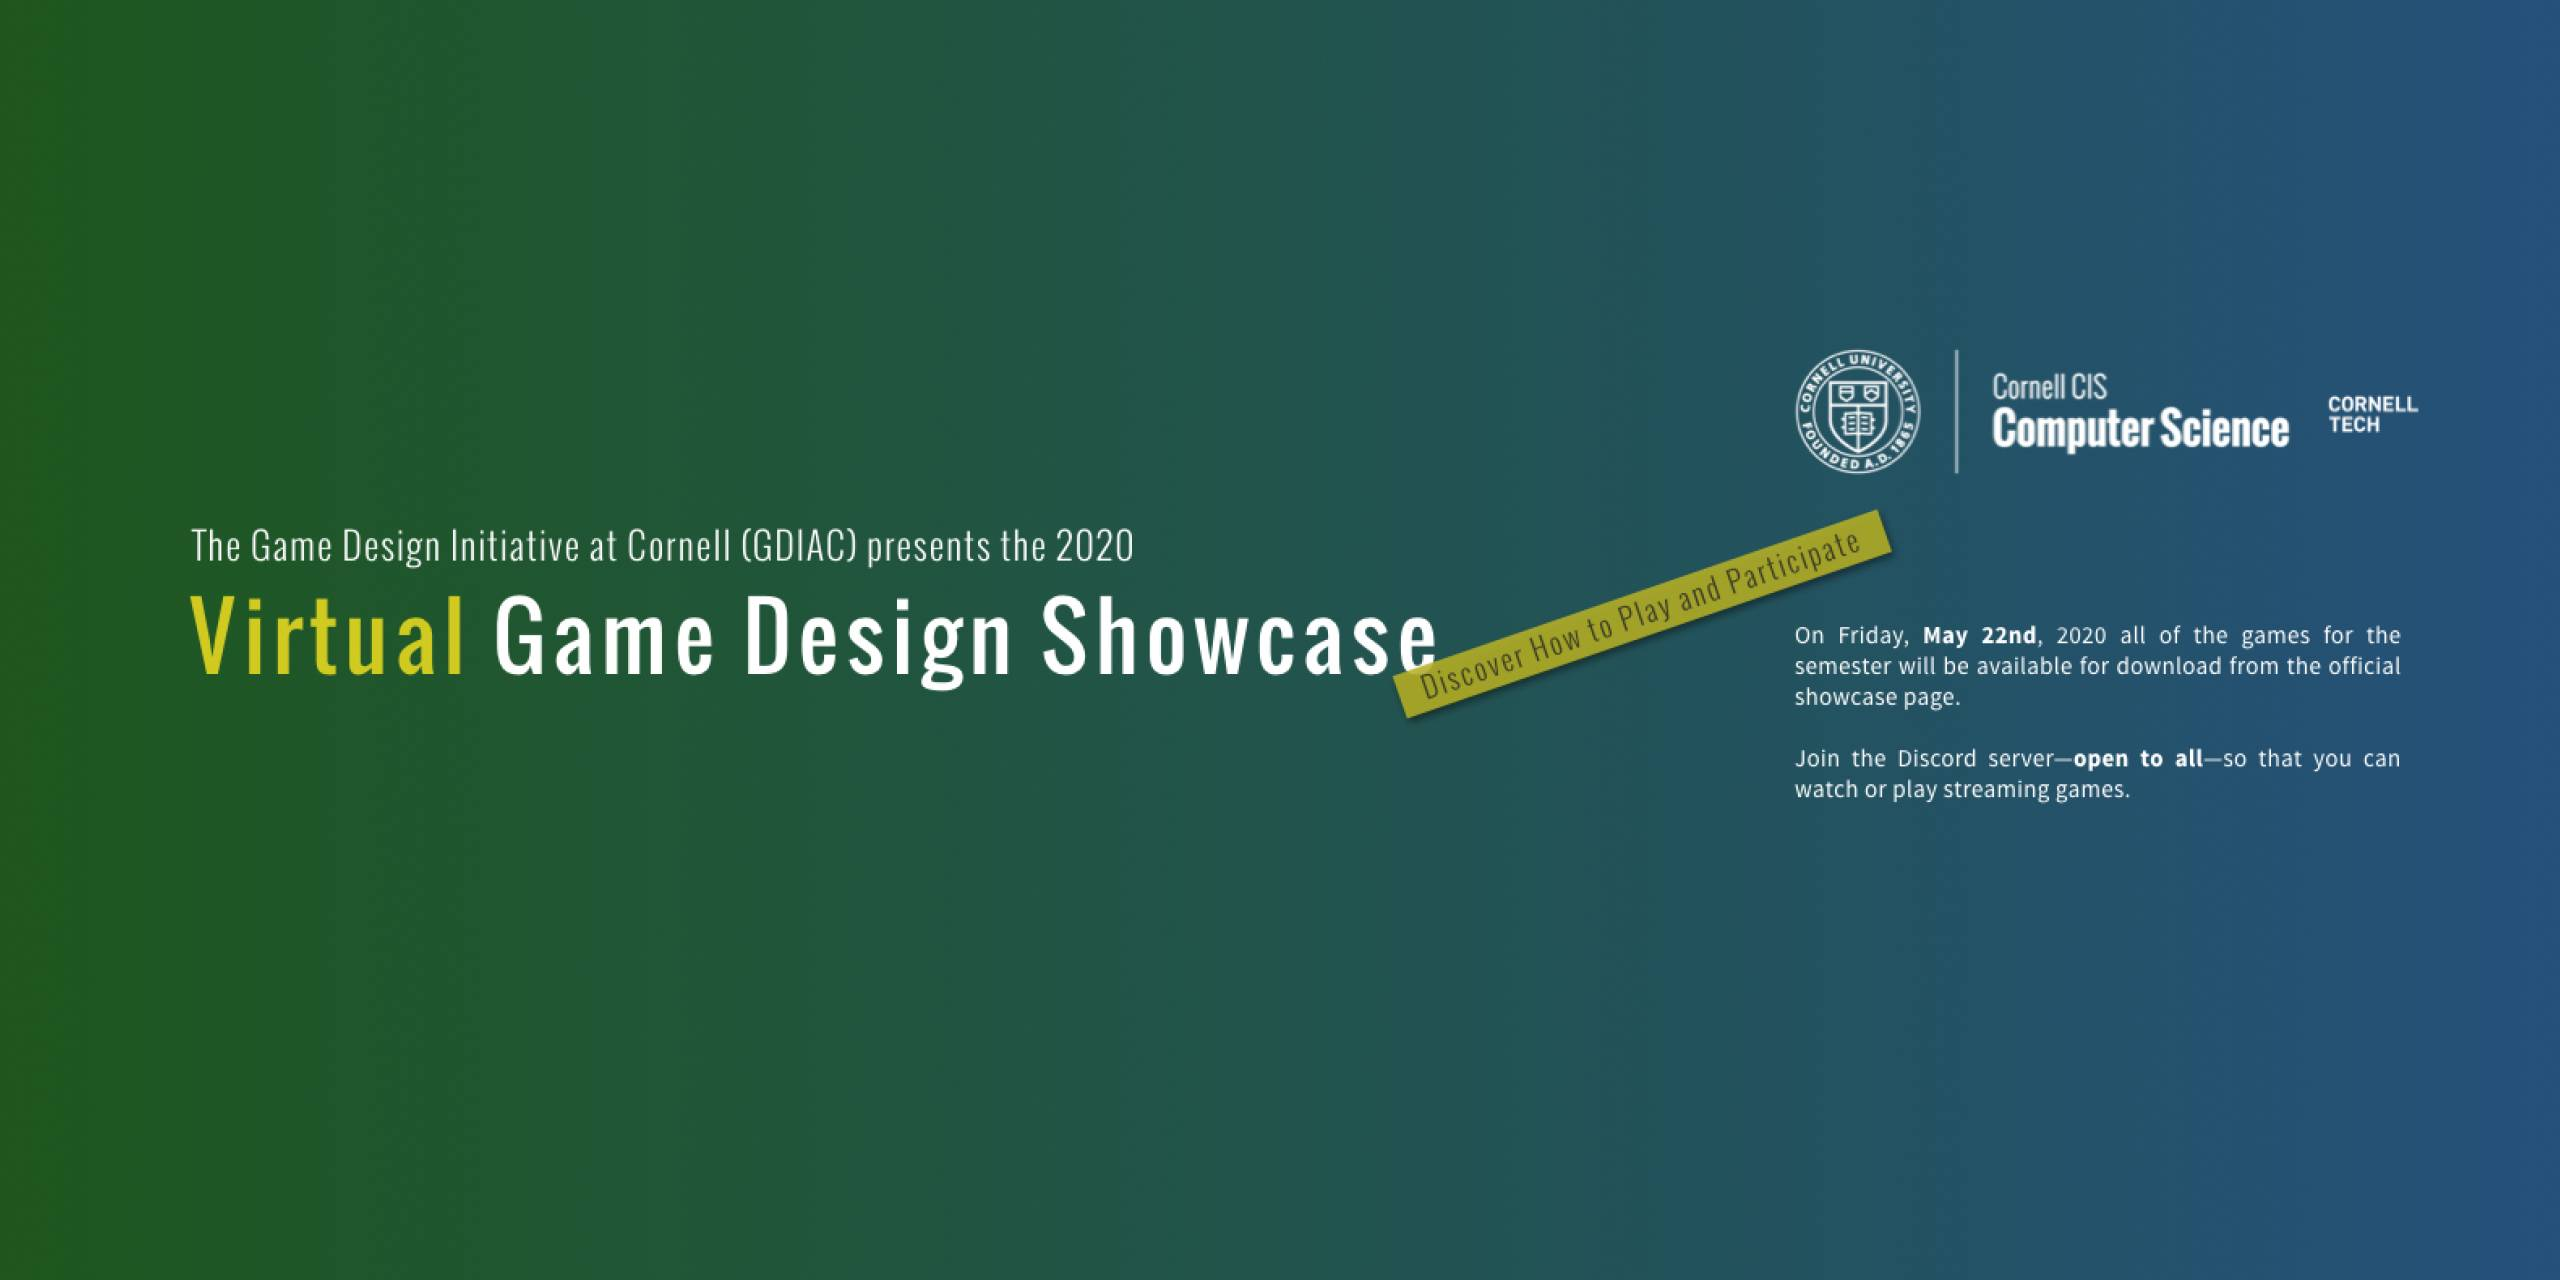 GDIAC Presents the 2020 Virtual Game Design Showcase